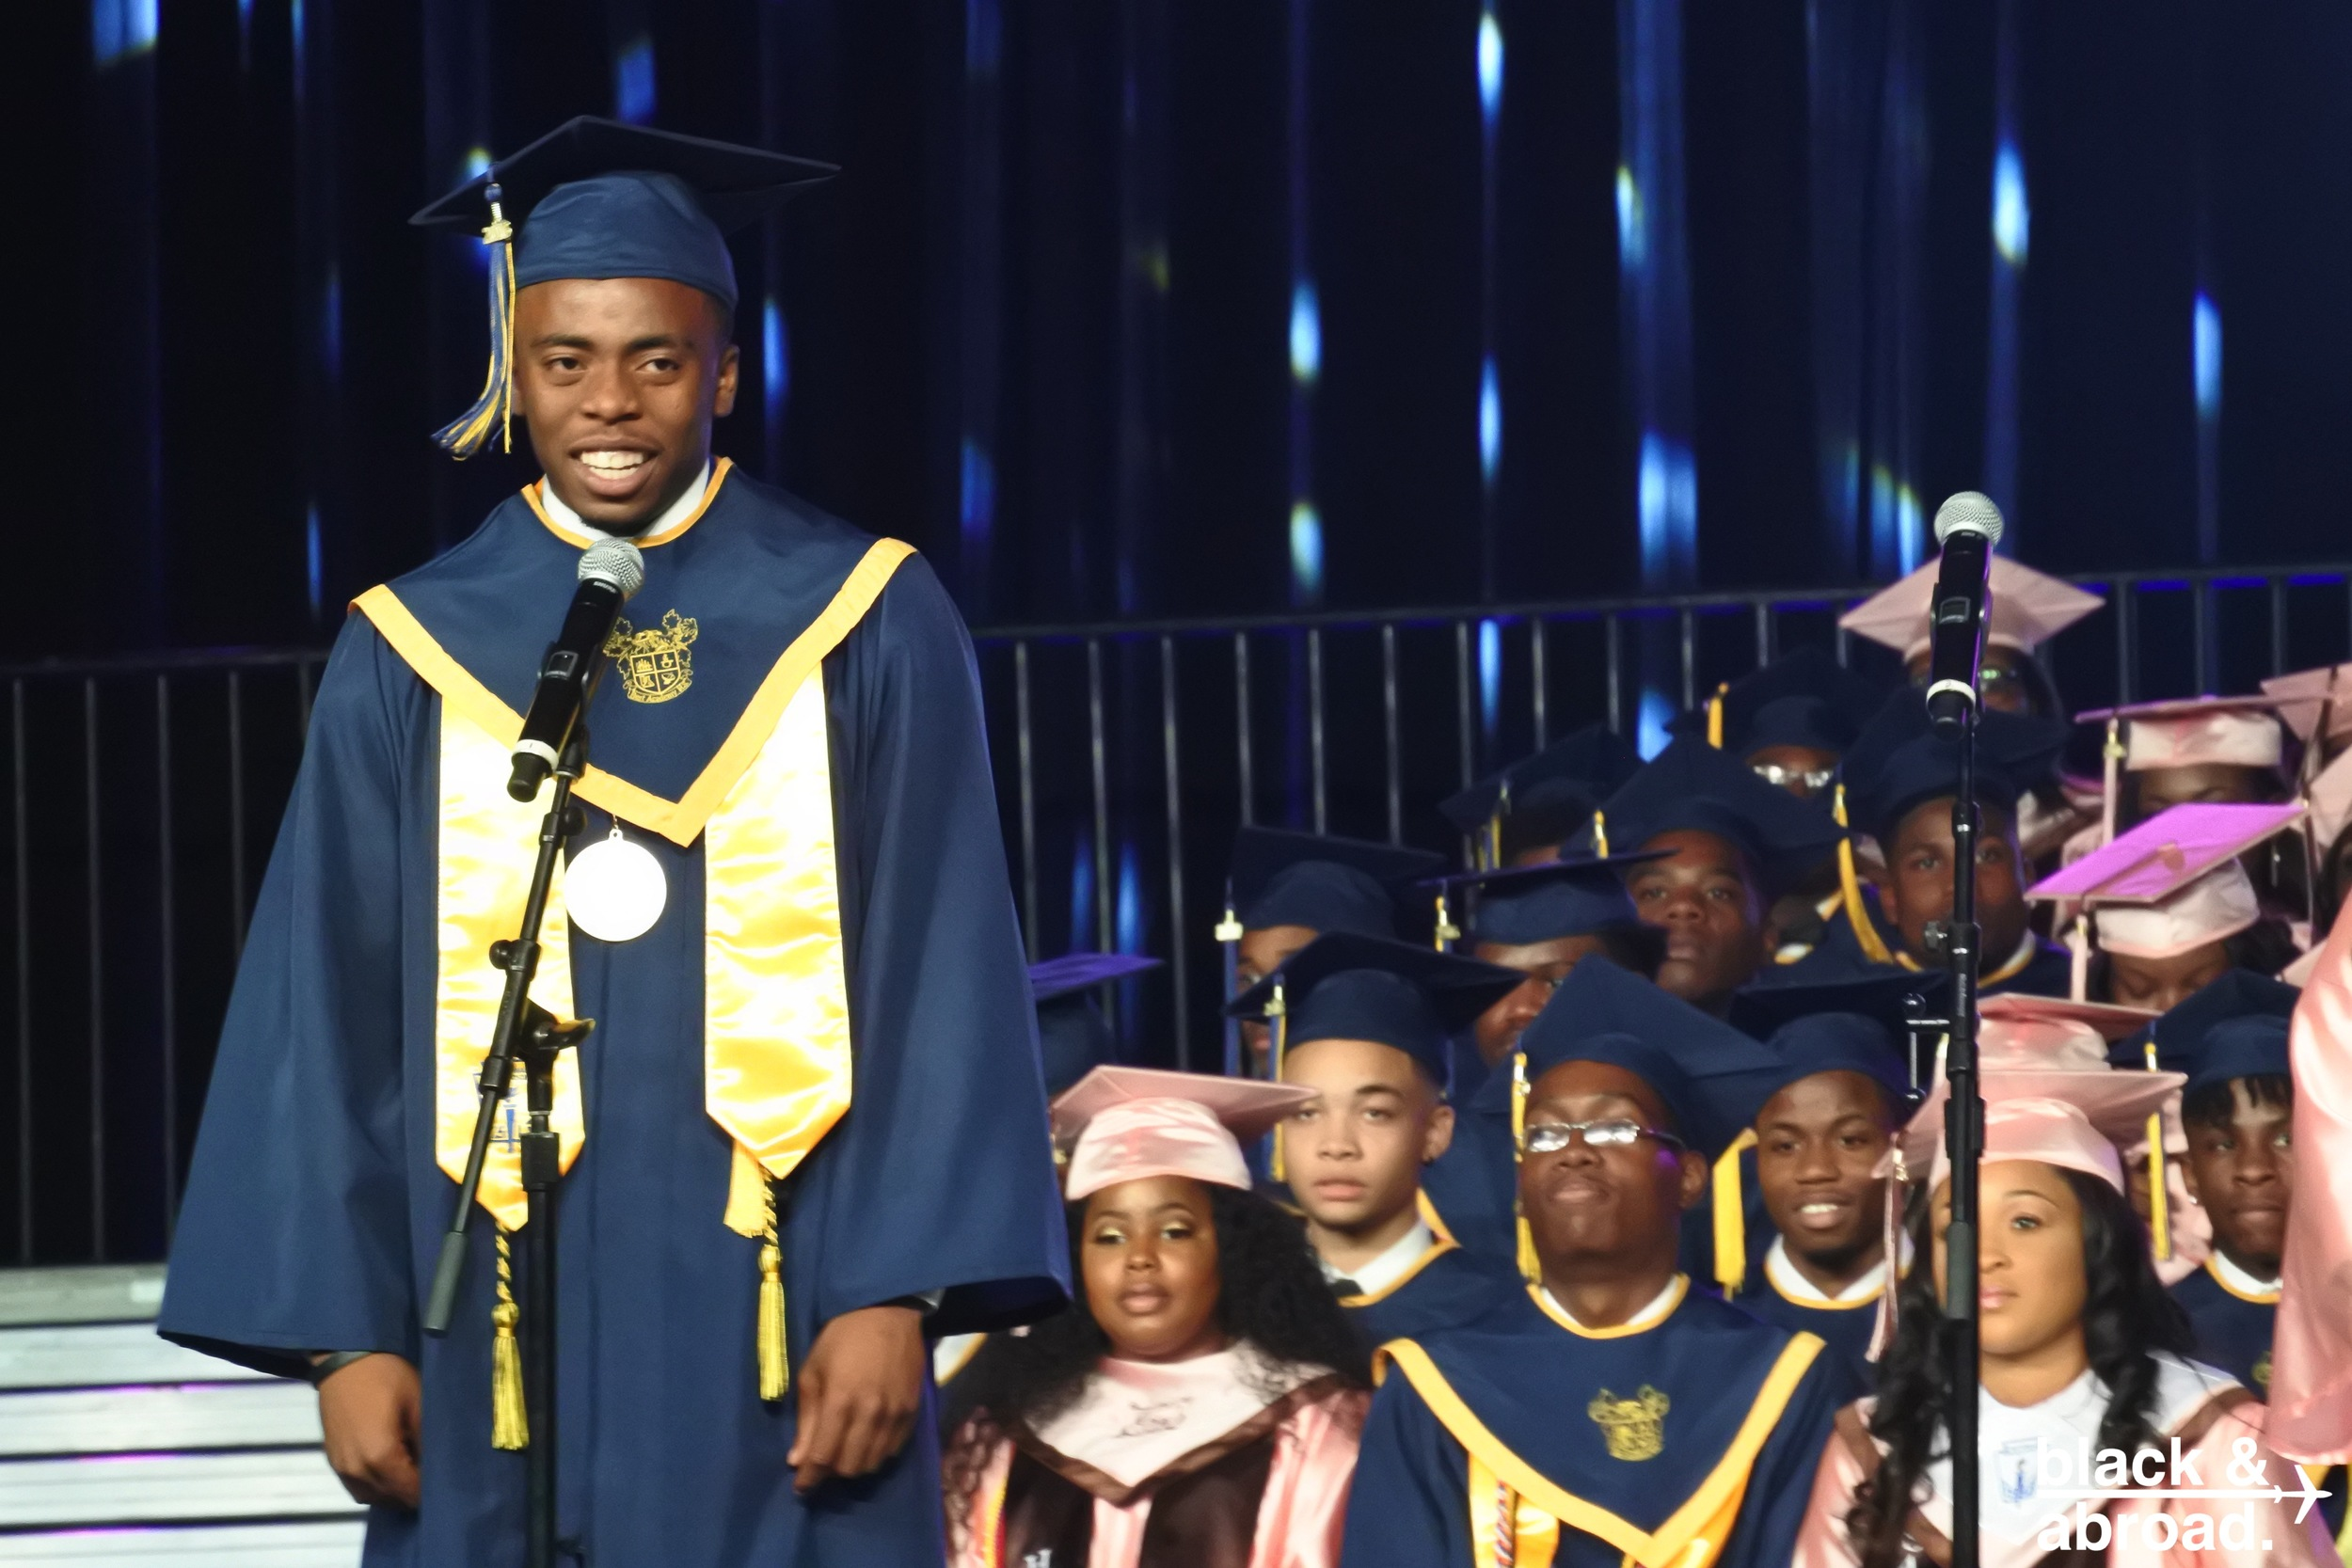 """Qwantayvious is the Valedictorian of the 2016 graduating class of B.E.S.T. Academy! He is also the recipient of the 2016 Emerging Leaders Scholarship, an International Science Fair finalist, the Atlanta Public Schools Top Scientist, a member of the Atlanta INtown Magazine's 8th Annual Class of Atlanta's """"20 Under 20,"""" and a the recipient of a prestigious internship at Georgia Tech's Project ENGAGES,where he researched the regeneration of articular cartilage.  Qwantayvious is headed to the University of Michigan in the fall to study mechanical engineering with aspirations of becoming an orthopedic surgeon.  It is our honor to name Qwantayvious the first Black & Abroad Student Ambassador!  Photo to left:Qwantayvious and his Spanish teacher, Ms. Pereira!"""